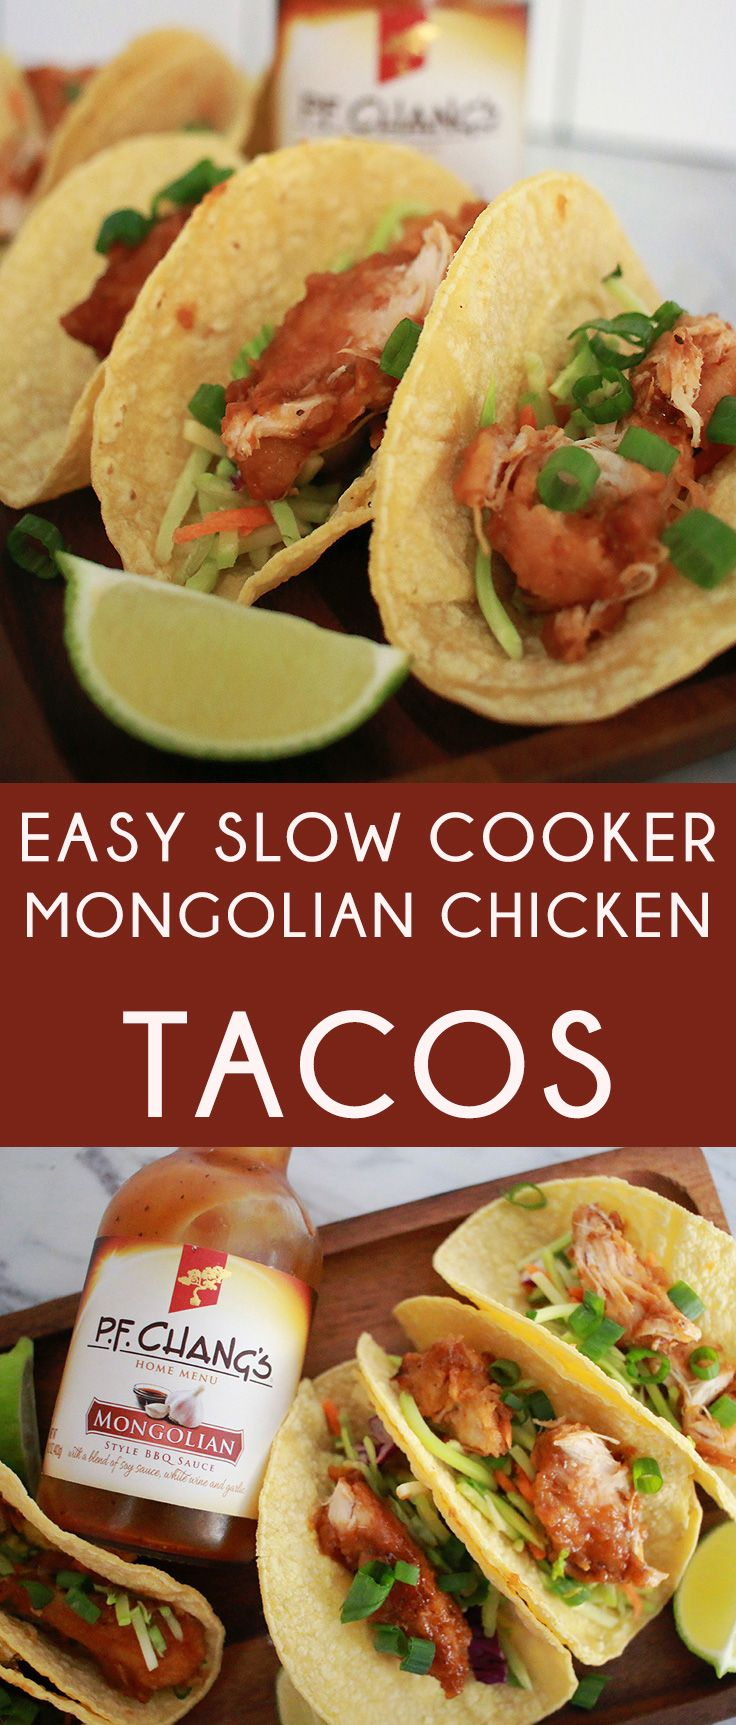 #ad The absolute easiest slow cooker mongolian chicken tacos! #authenticmadeeasy